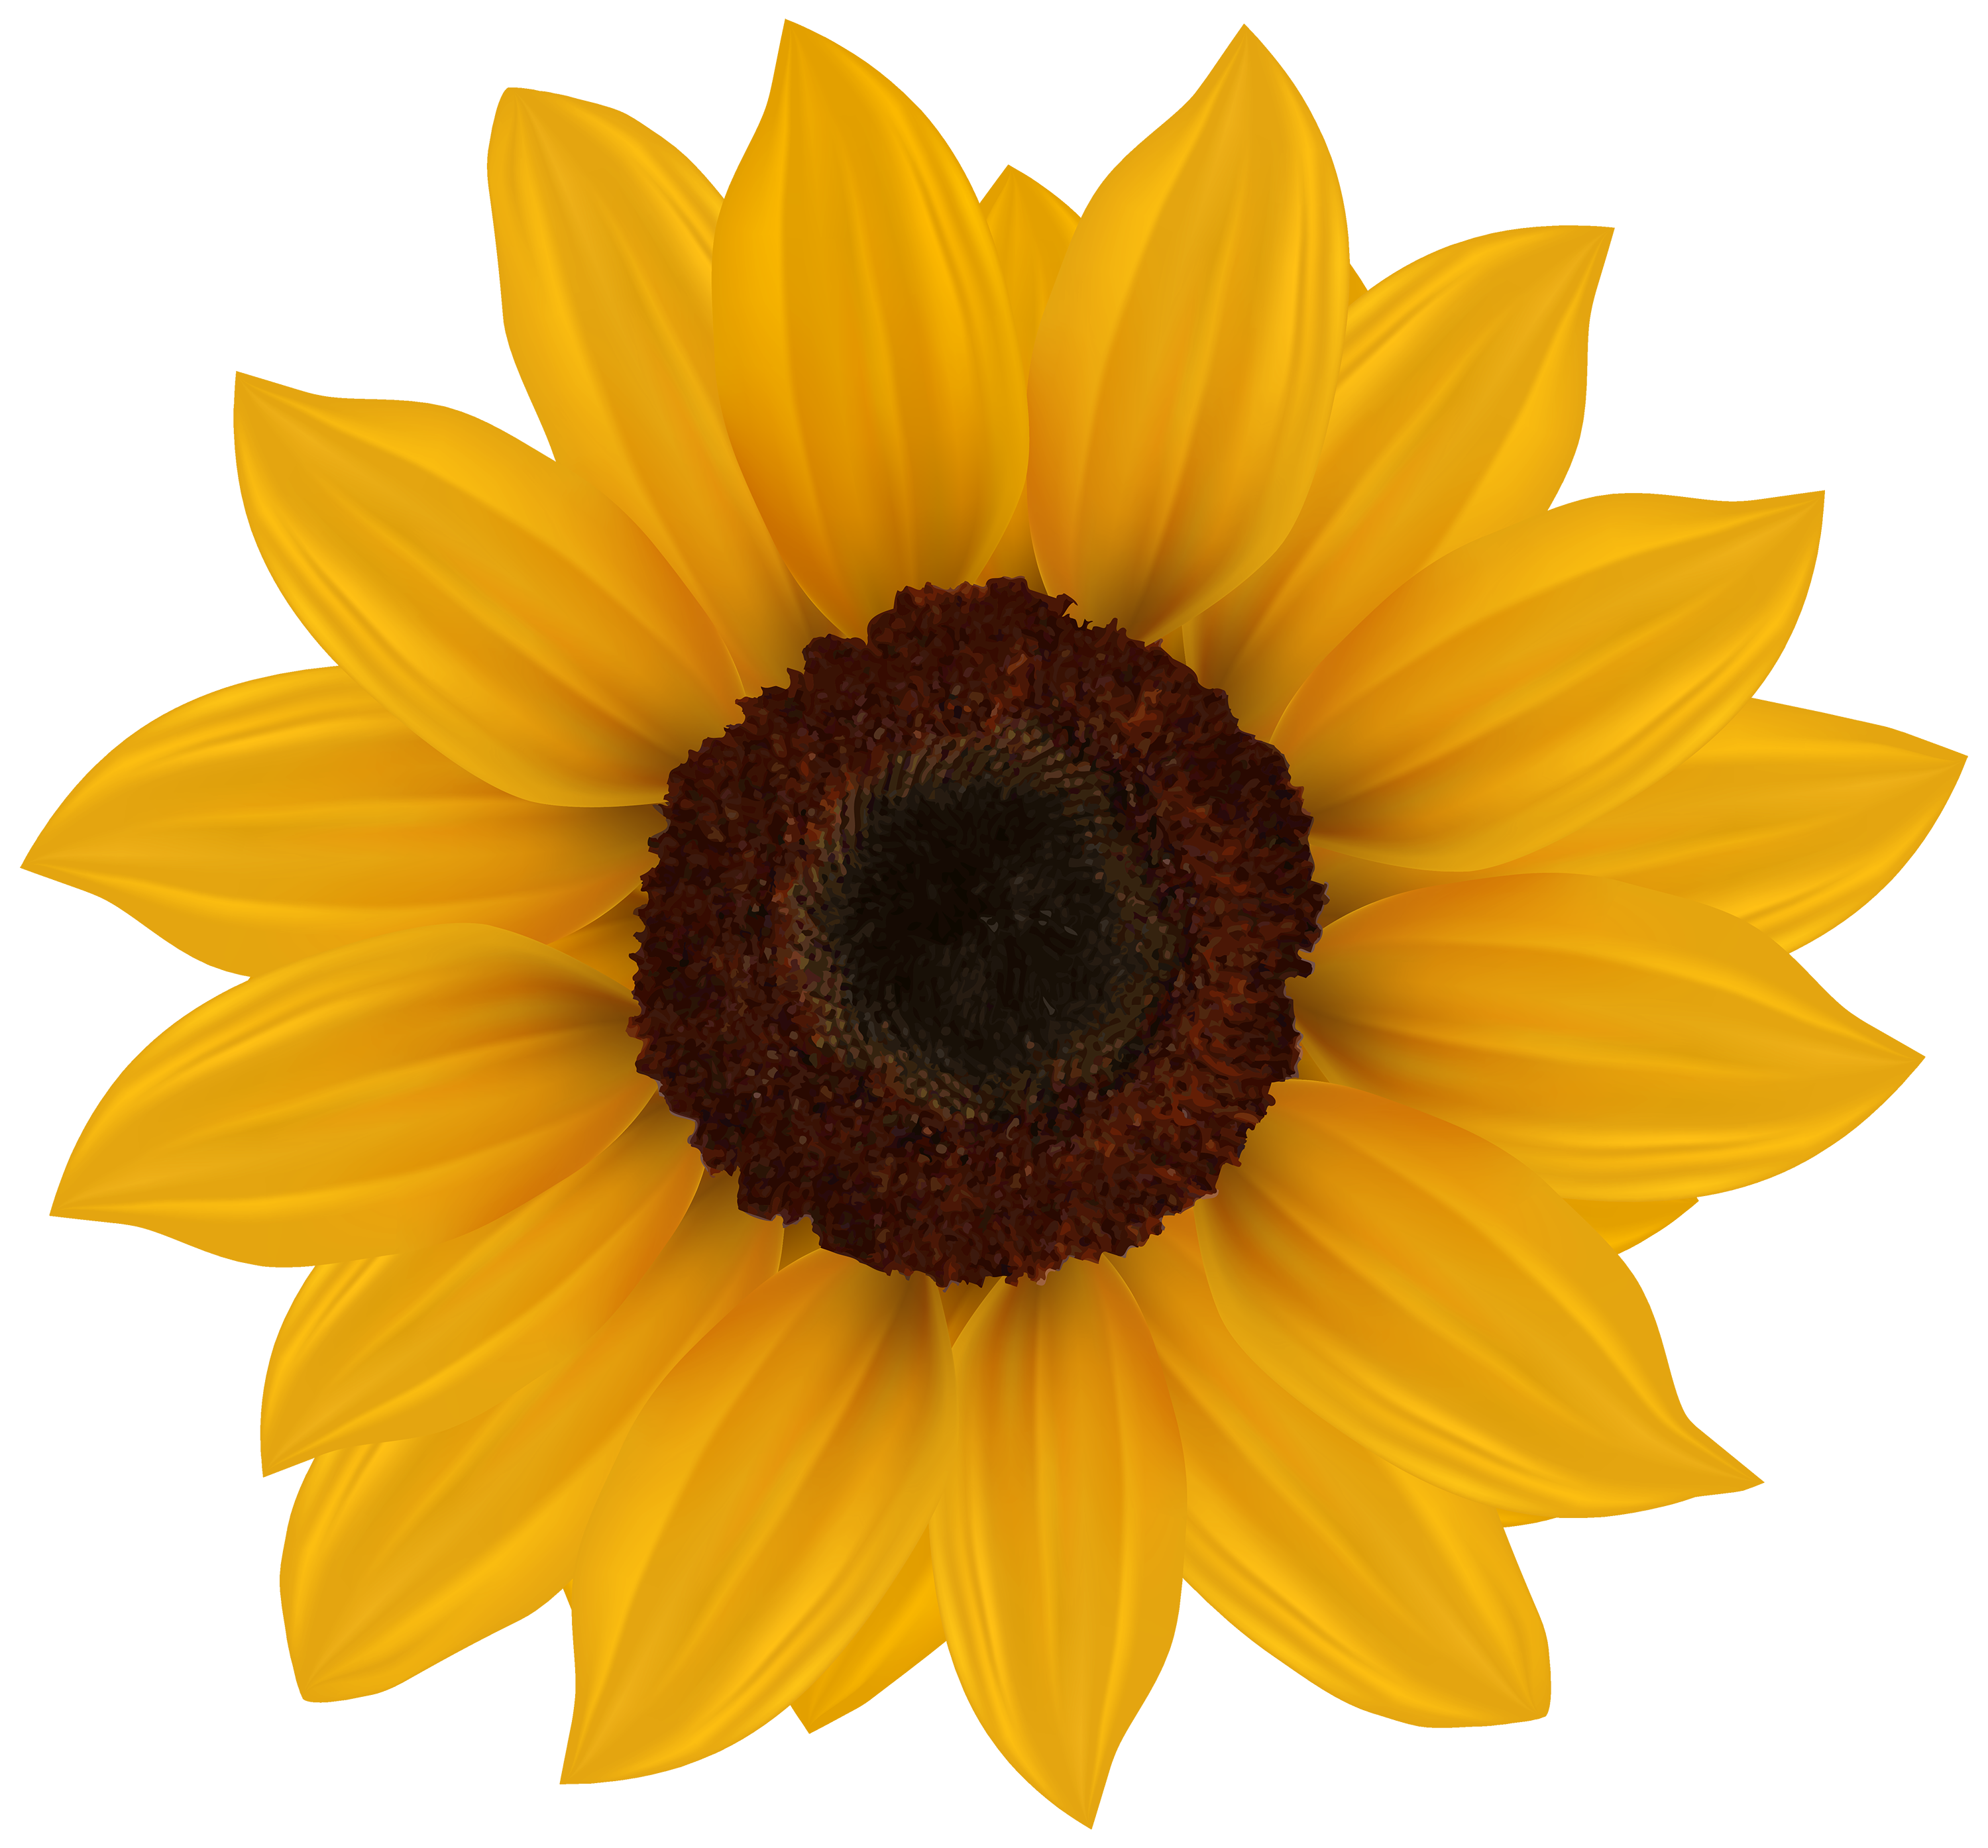 image library download Sunflowers clipart rose. Sunflower png image best